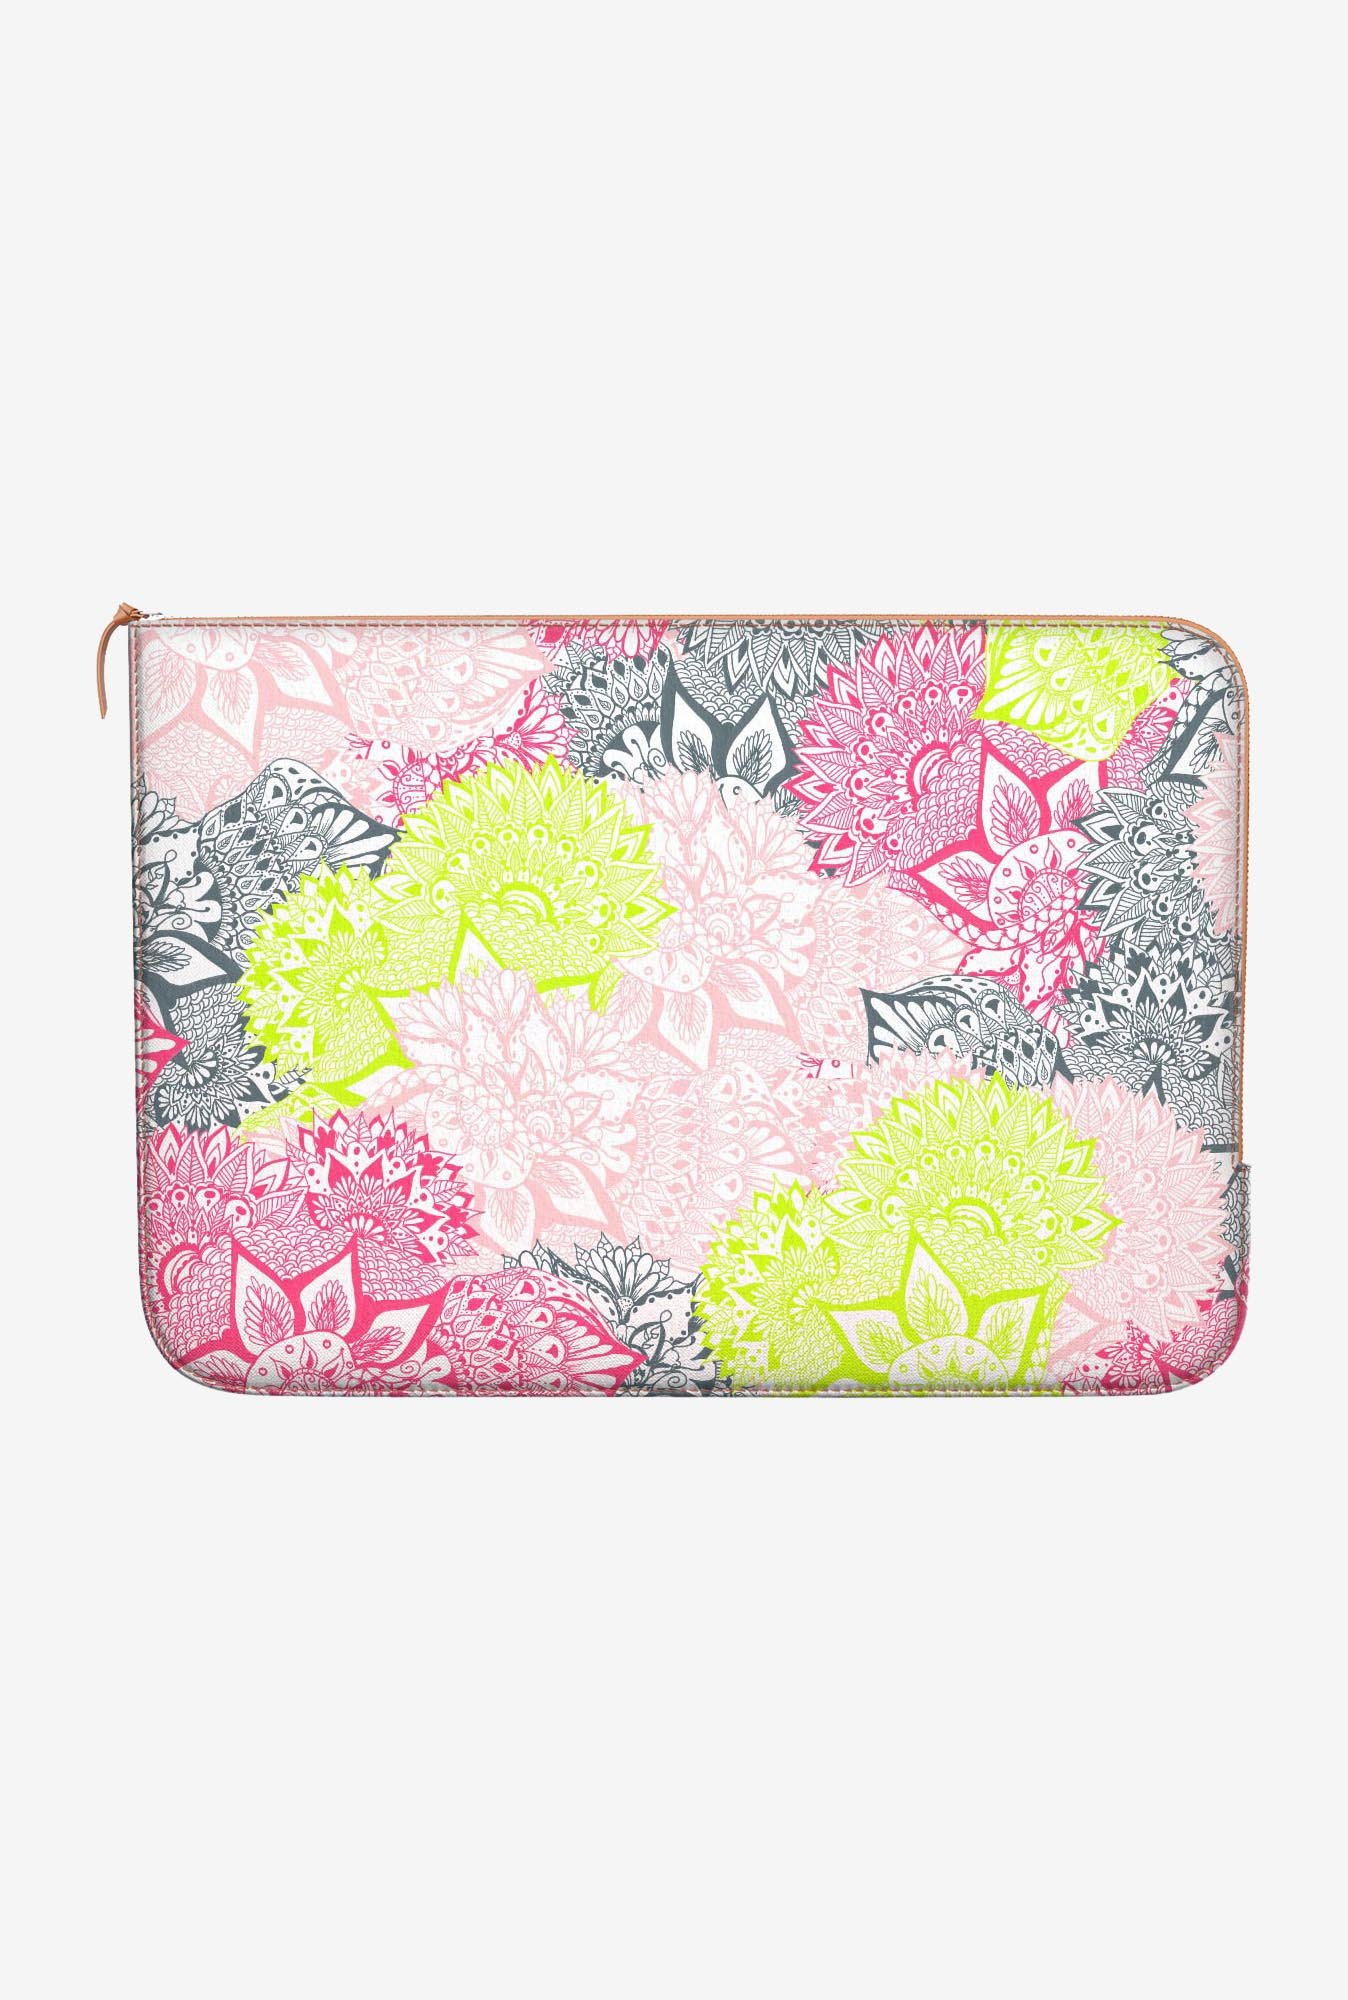 DailyObjects Paisley Pattern MacBook Air 11 Zippered Sleeve